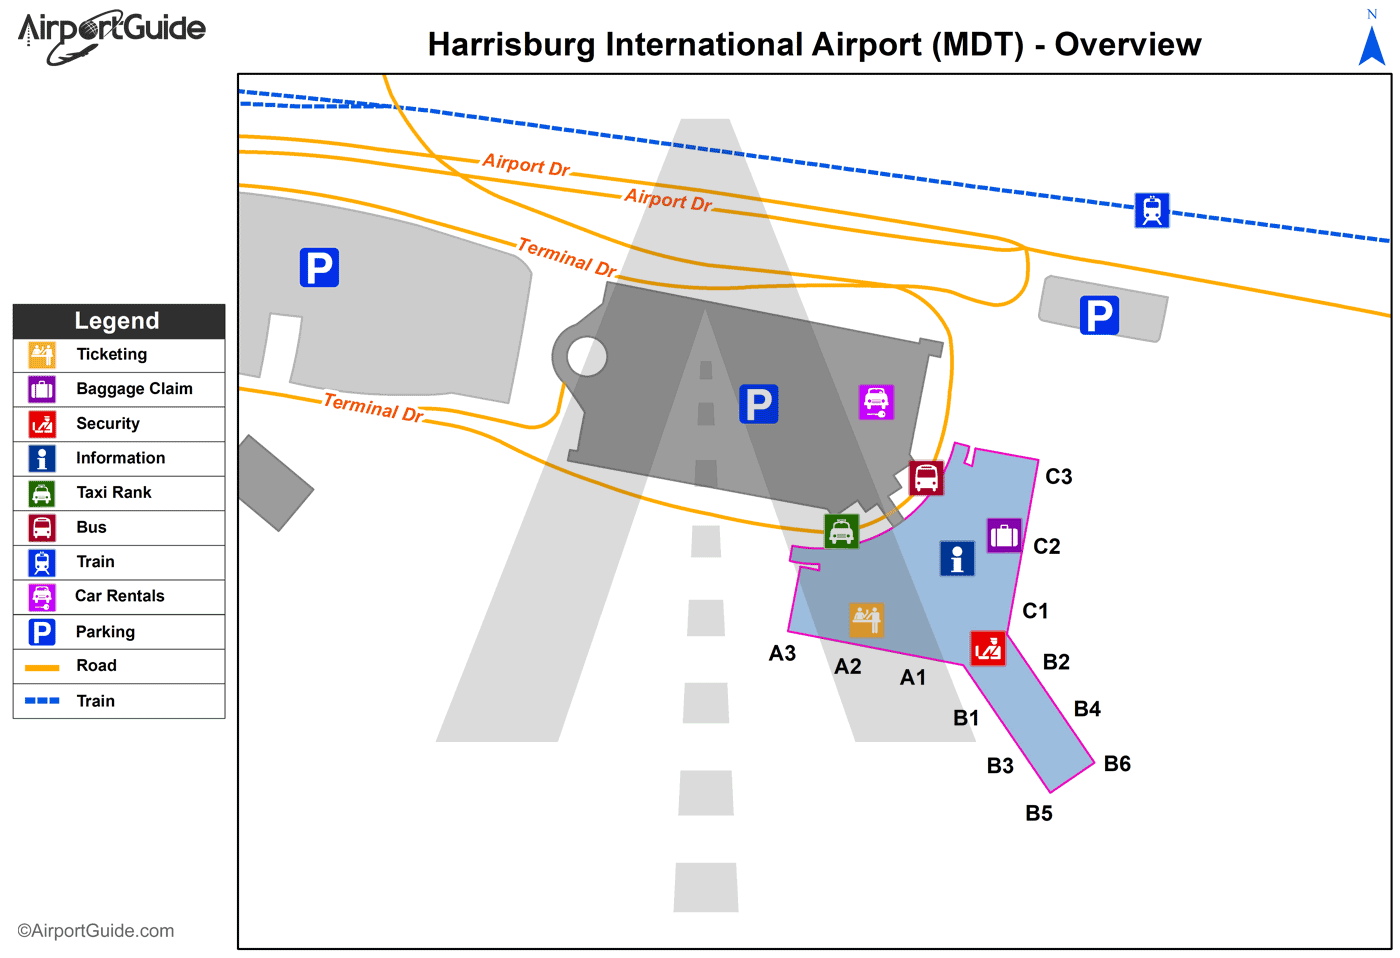 Harrisburg - Harrisburg International (MDT) Airport Terminal Map - Overview